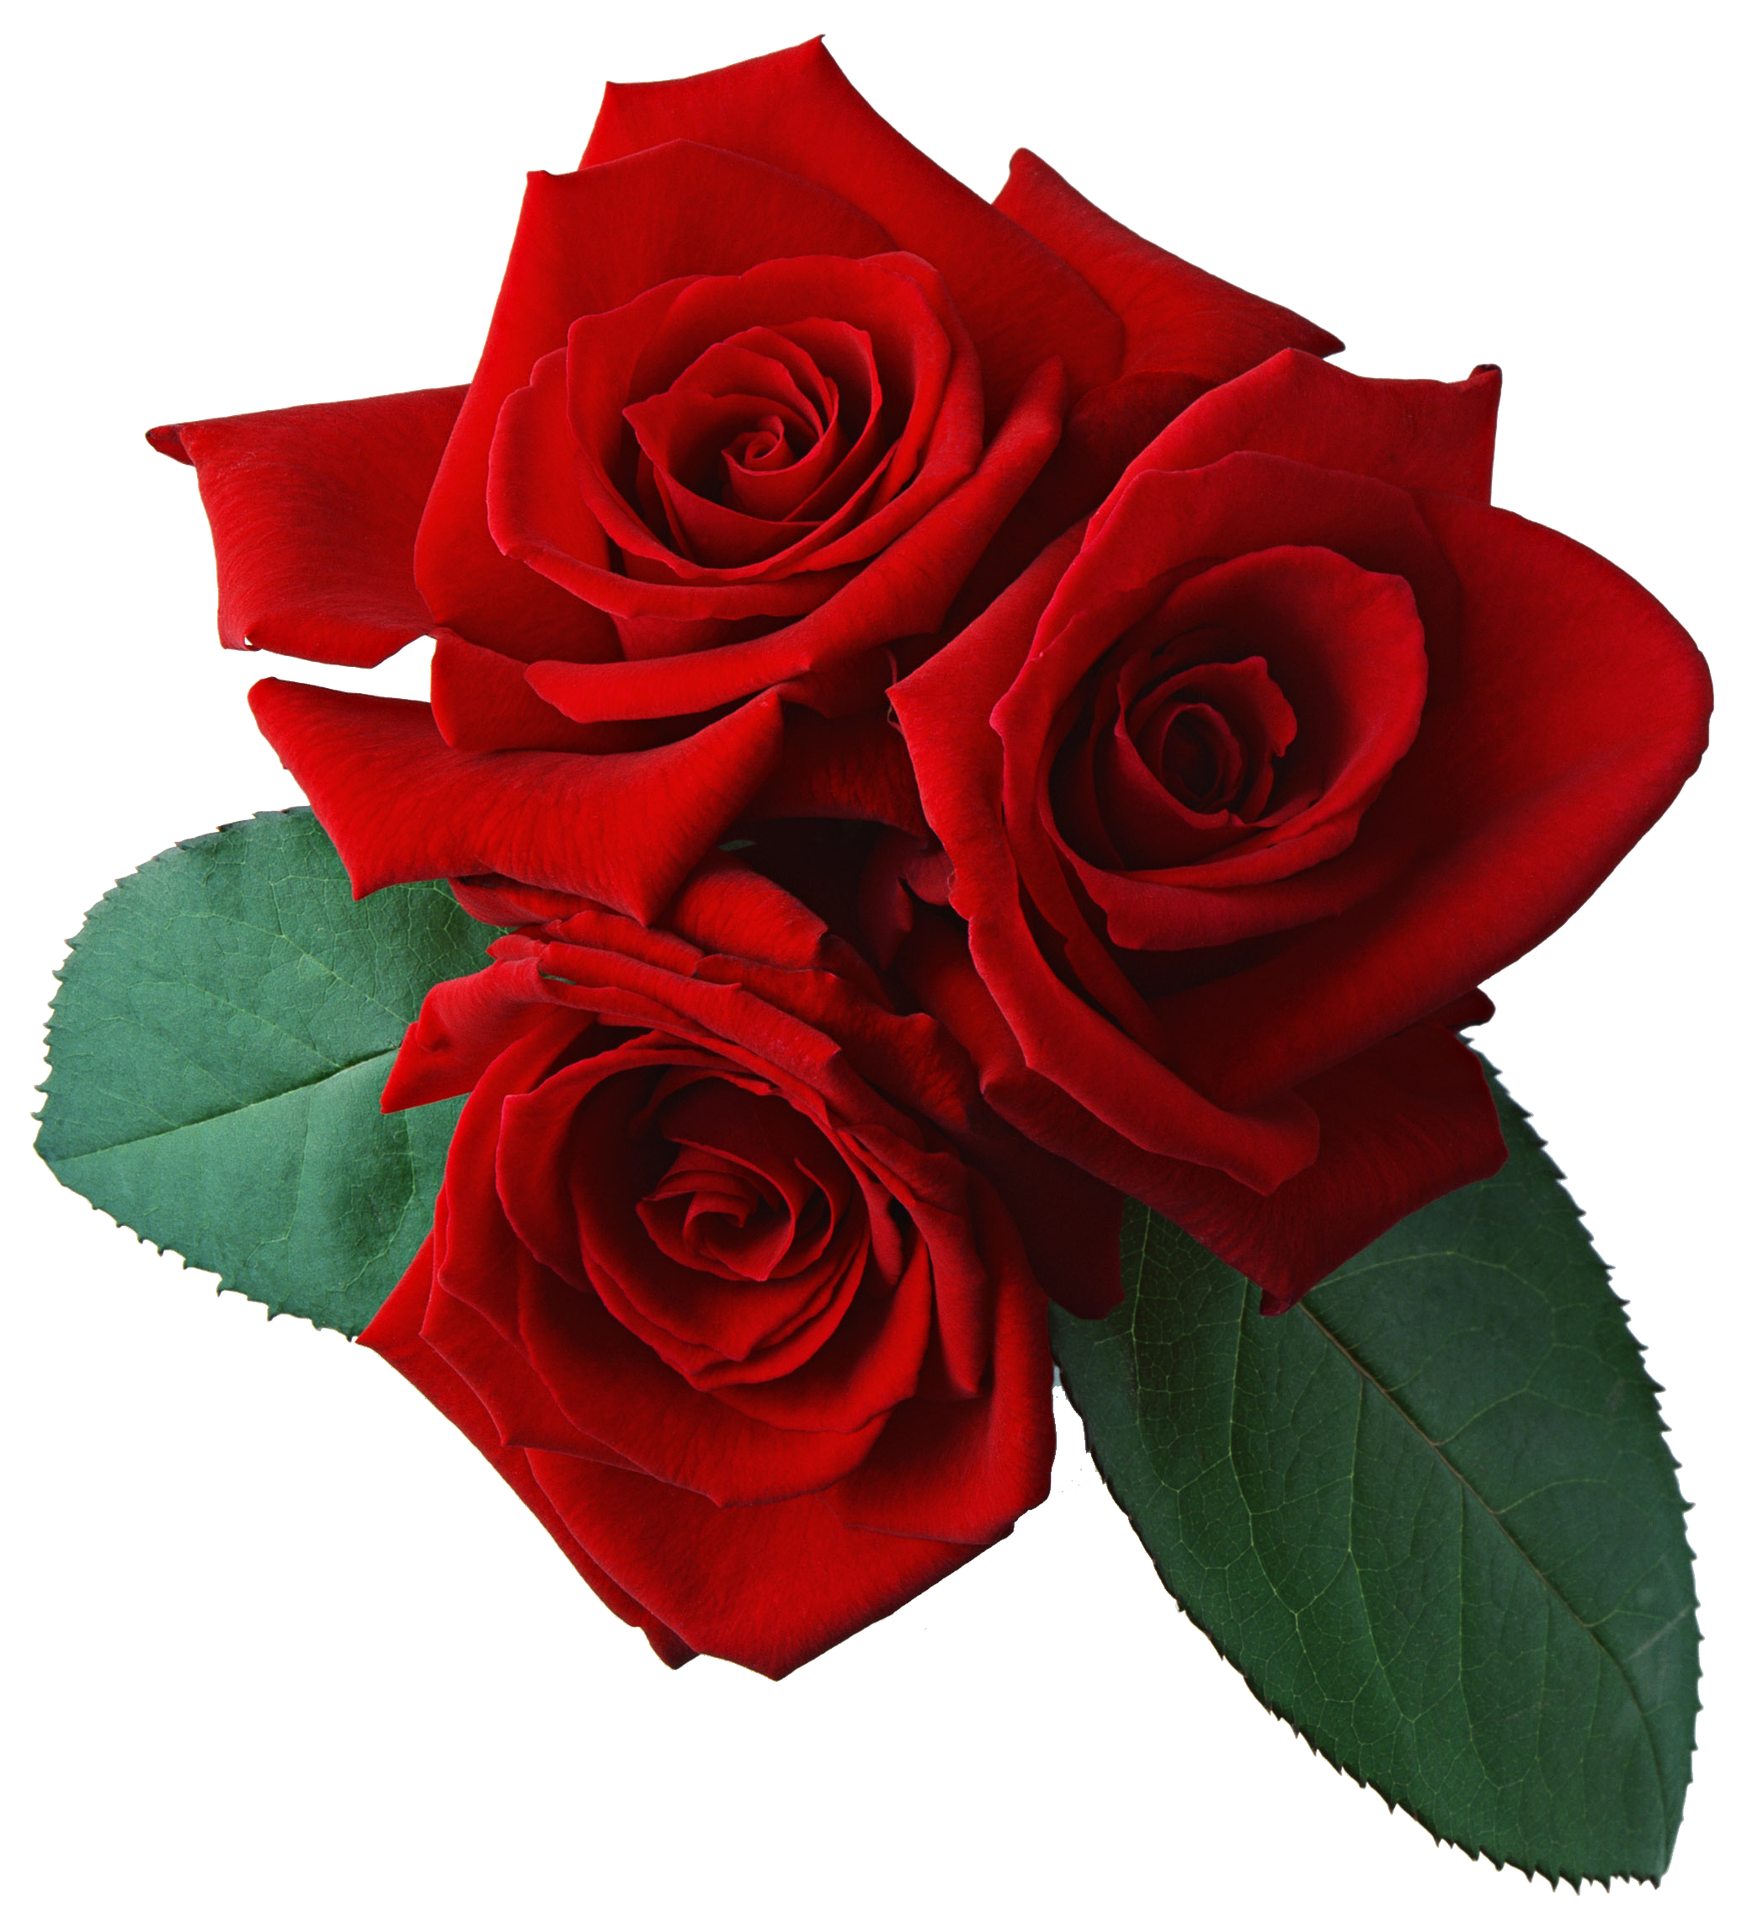 Editing Tutorials Red Rose Png Rose Flower Png Red Roses